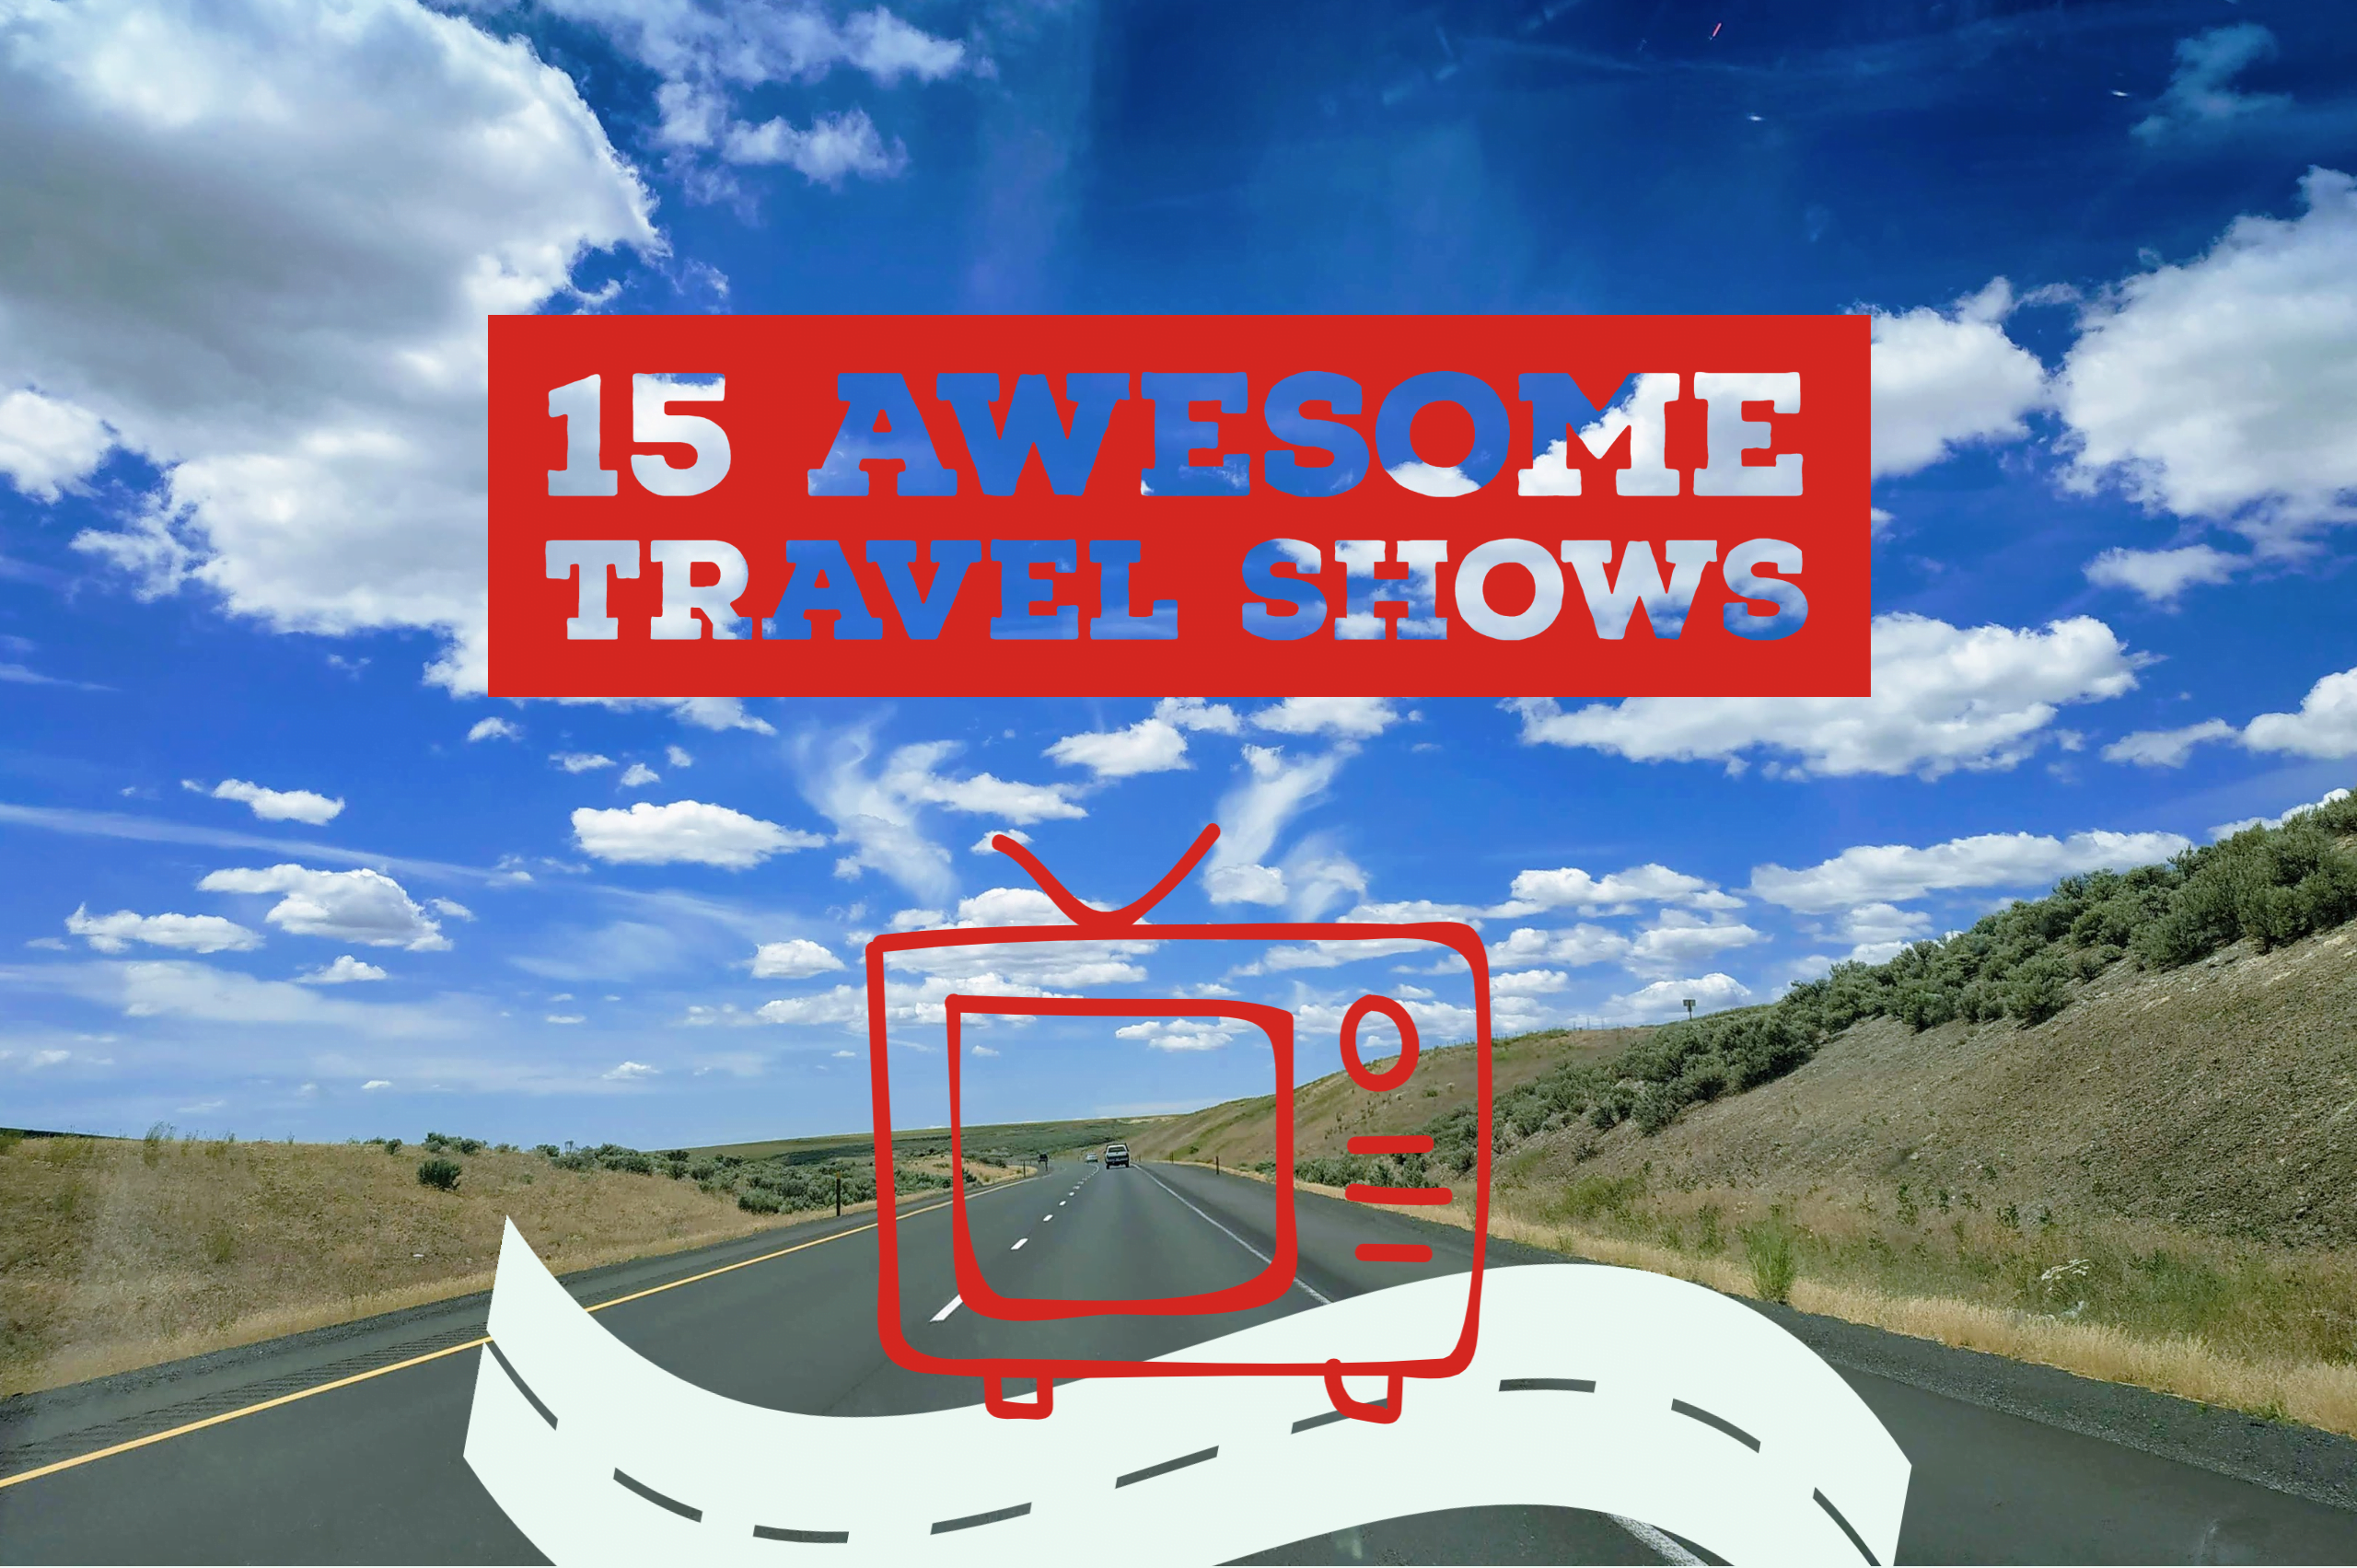 roadtrip travel shows